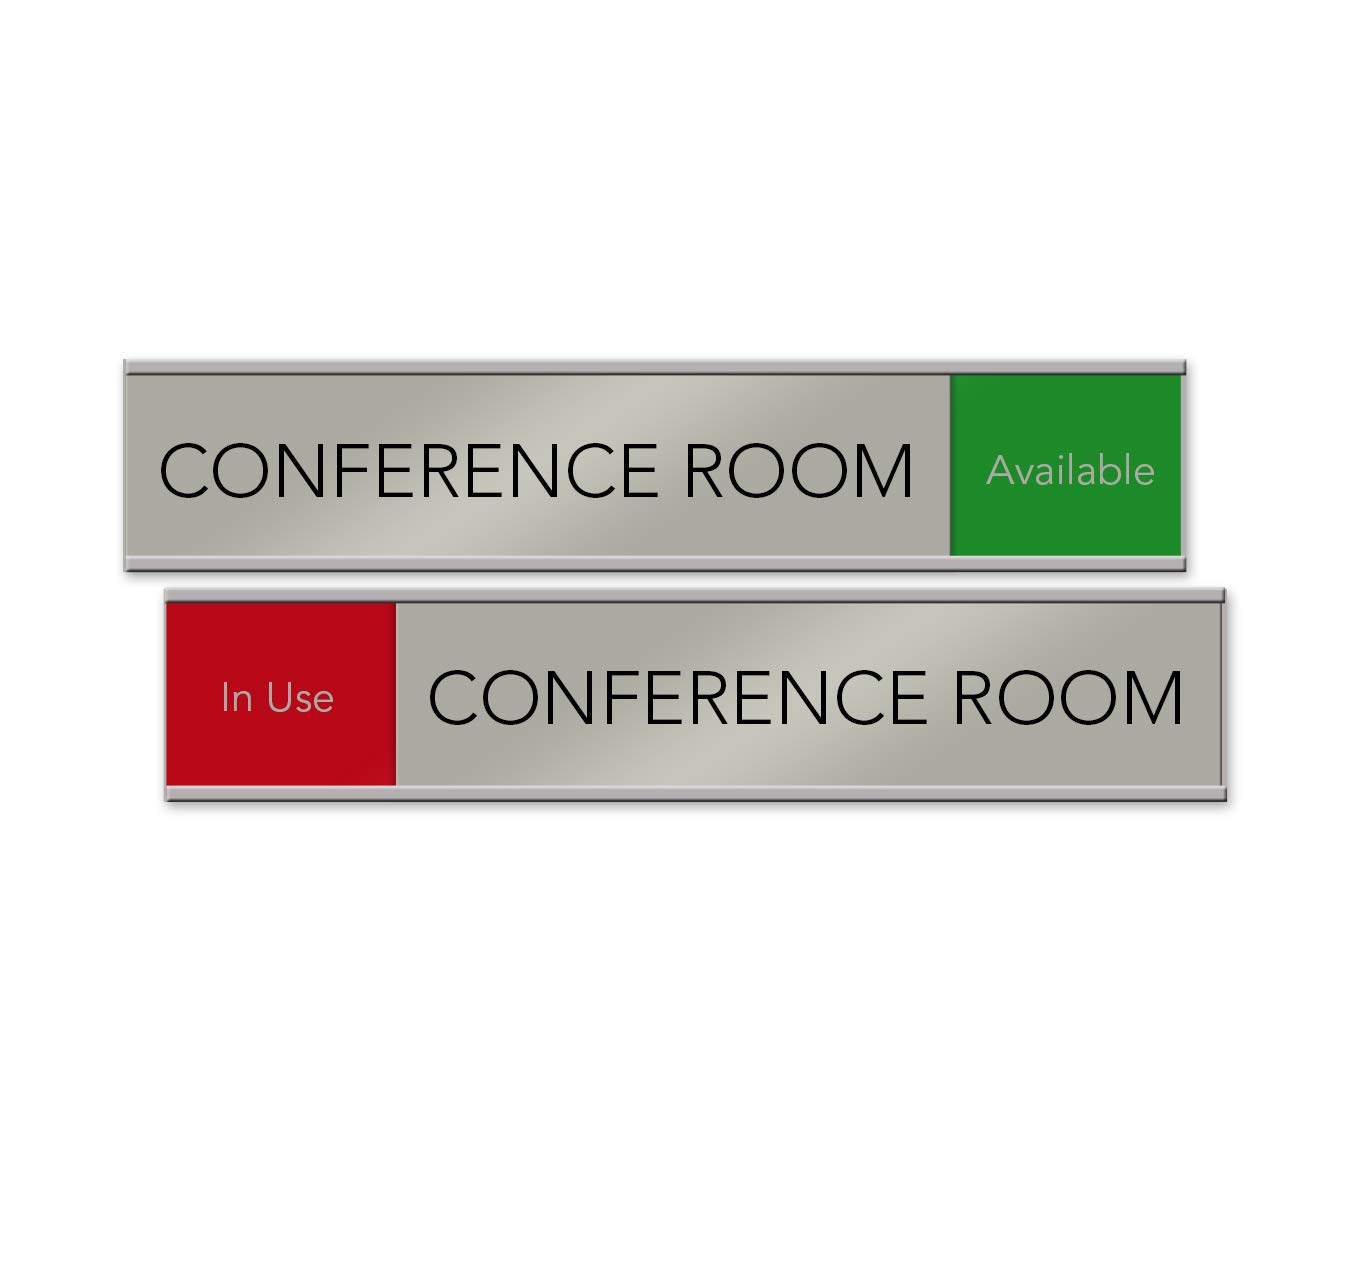 Quality Satin-Aluminum Conference Room Slider Signs - 10 x 2 - Made in The USA (Red/Green) by NapTags